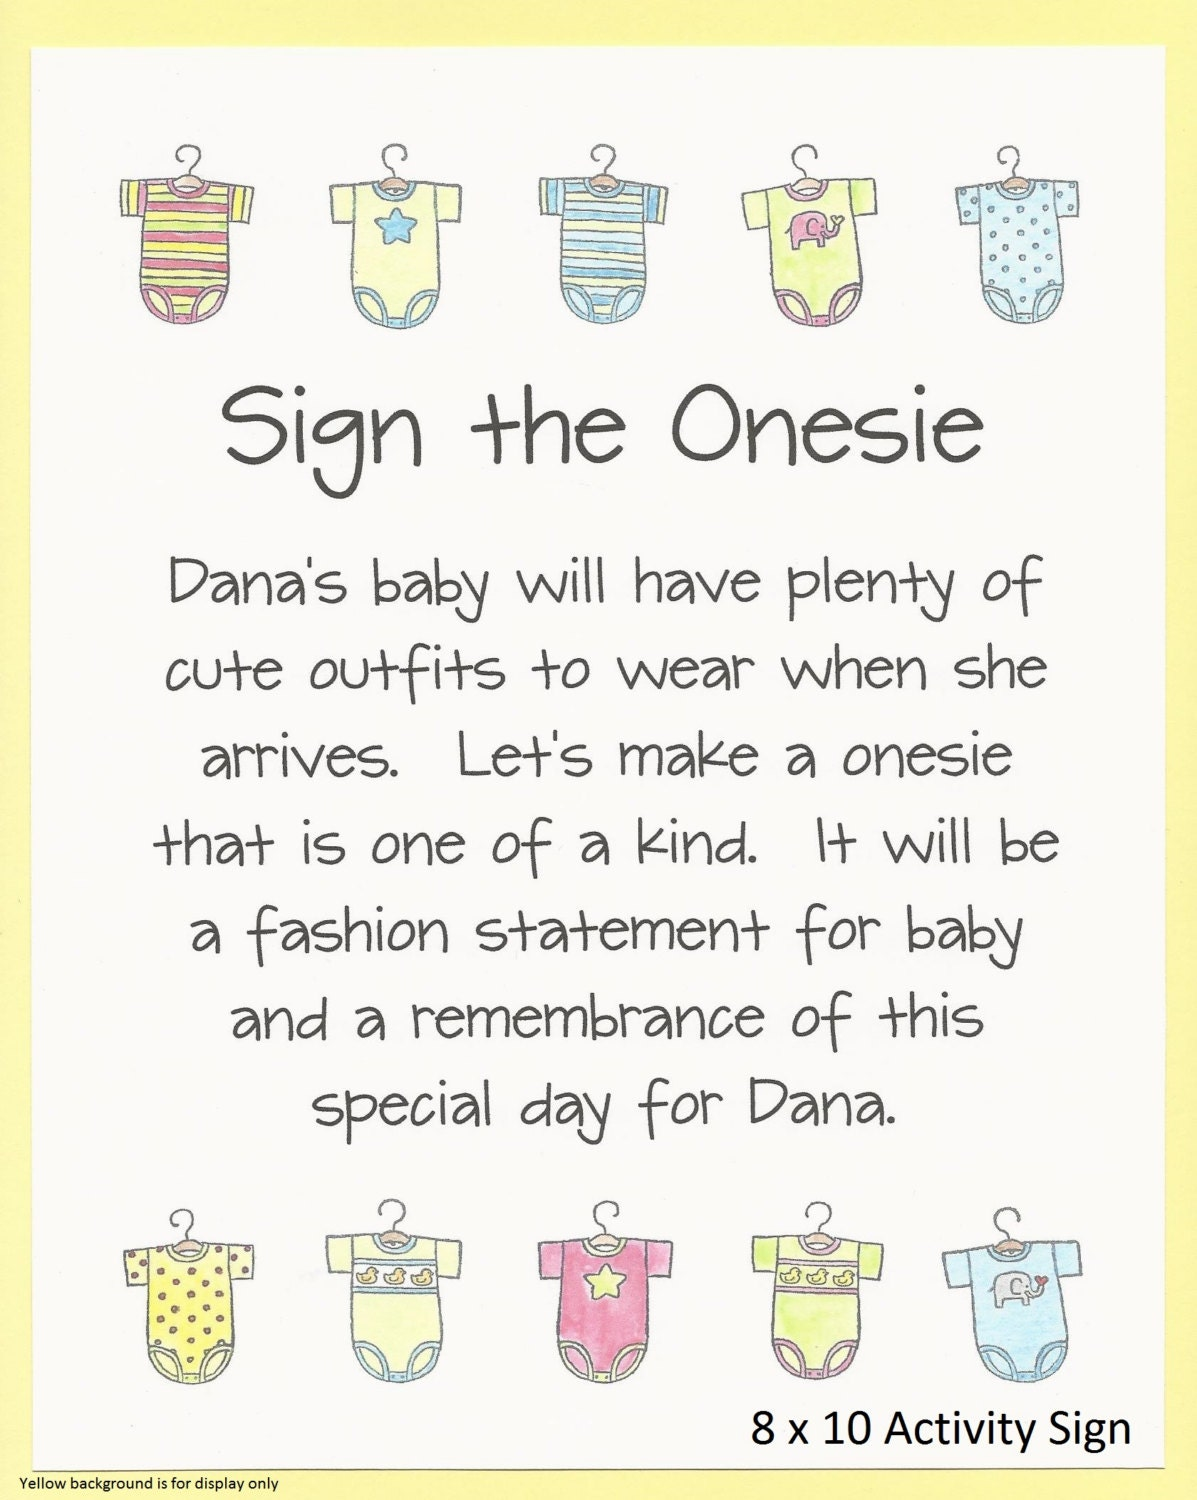 c634147b65a83 Decorate a Onesie Baby Shower Game Sign - Baby Shower Printables, Sign the  Onesie Activity, Paint a Onesie Shower Games, Color a Onesie Game